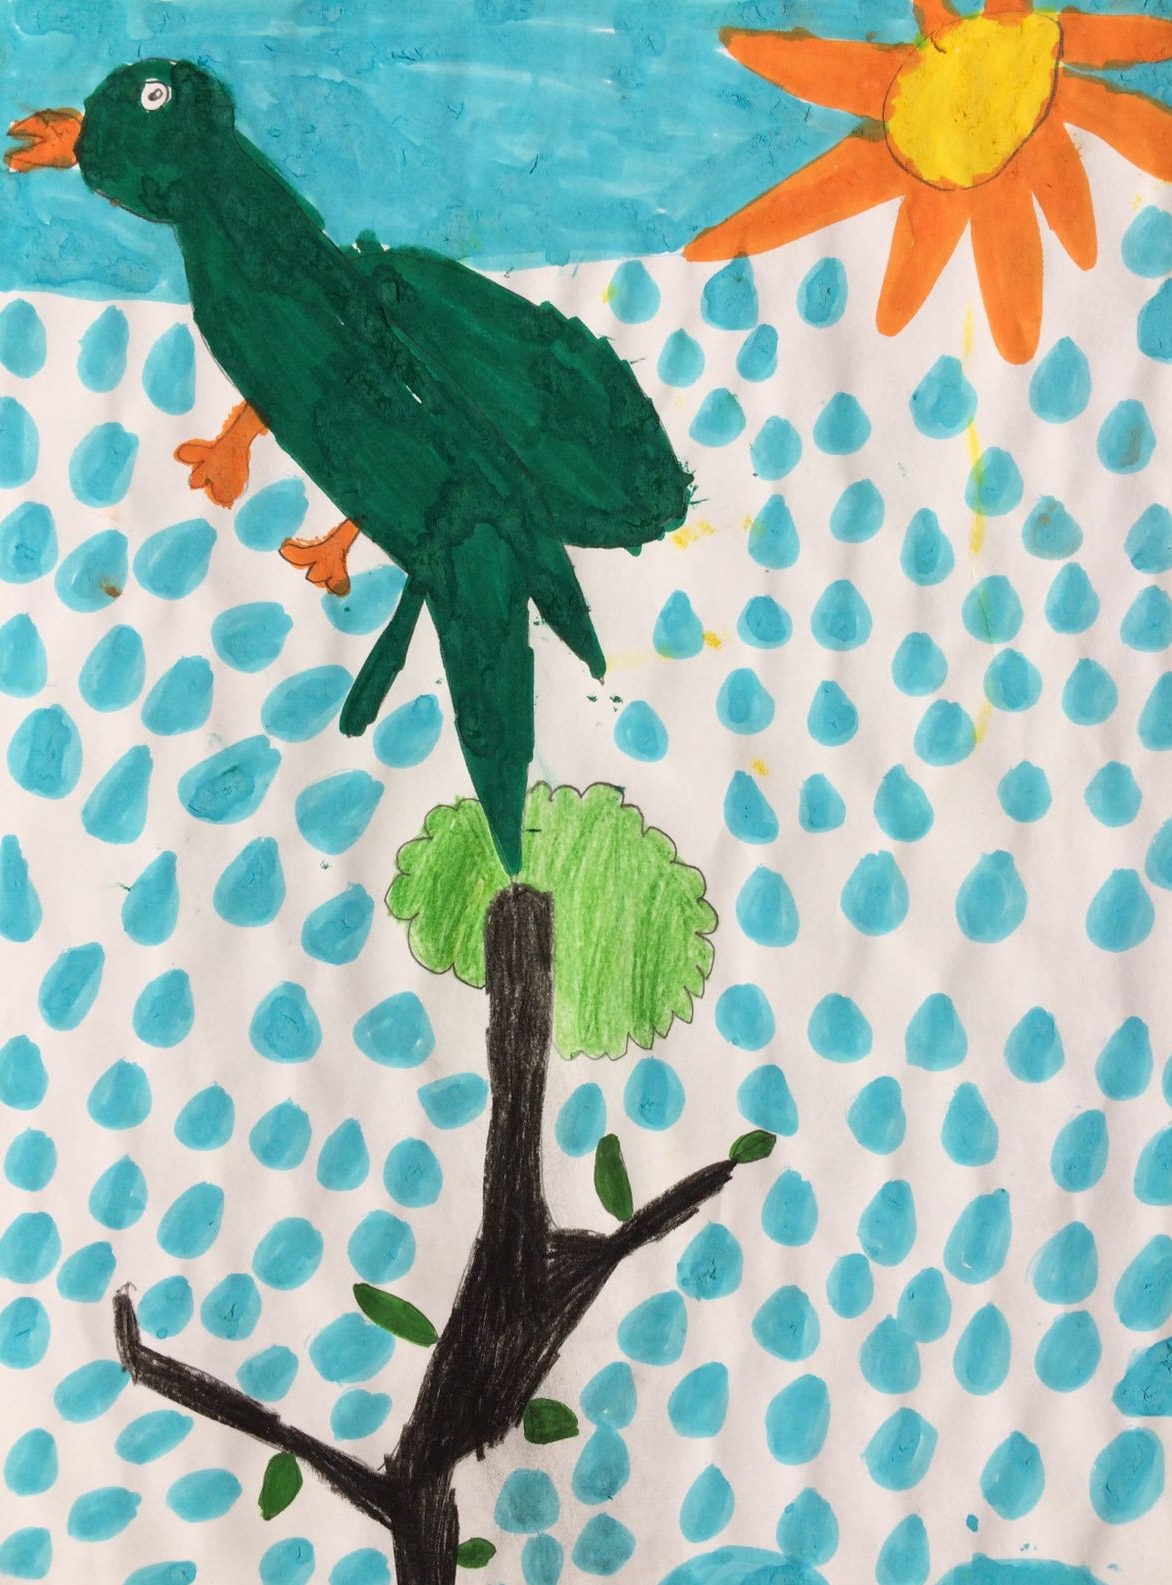 Parakeet on a tree, by Teo